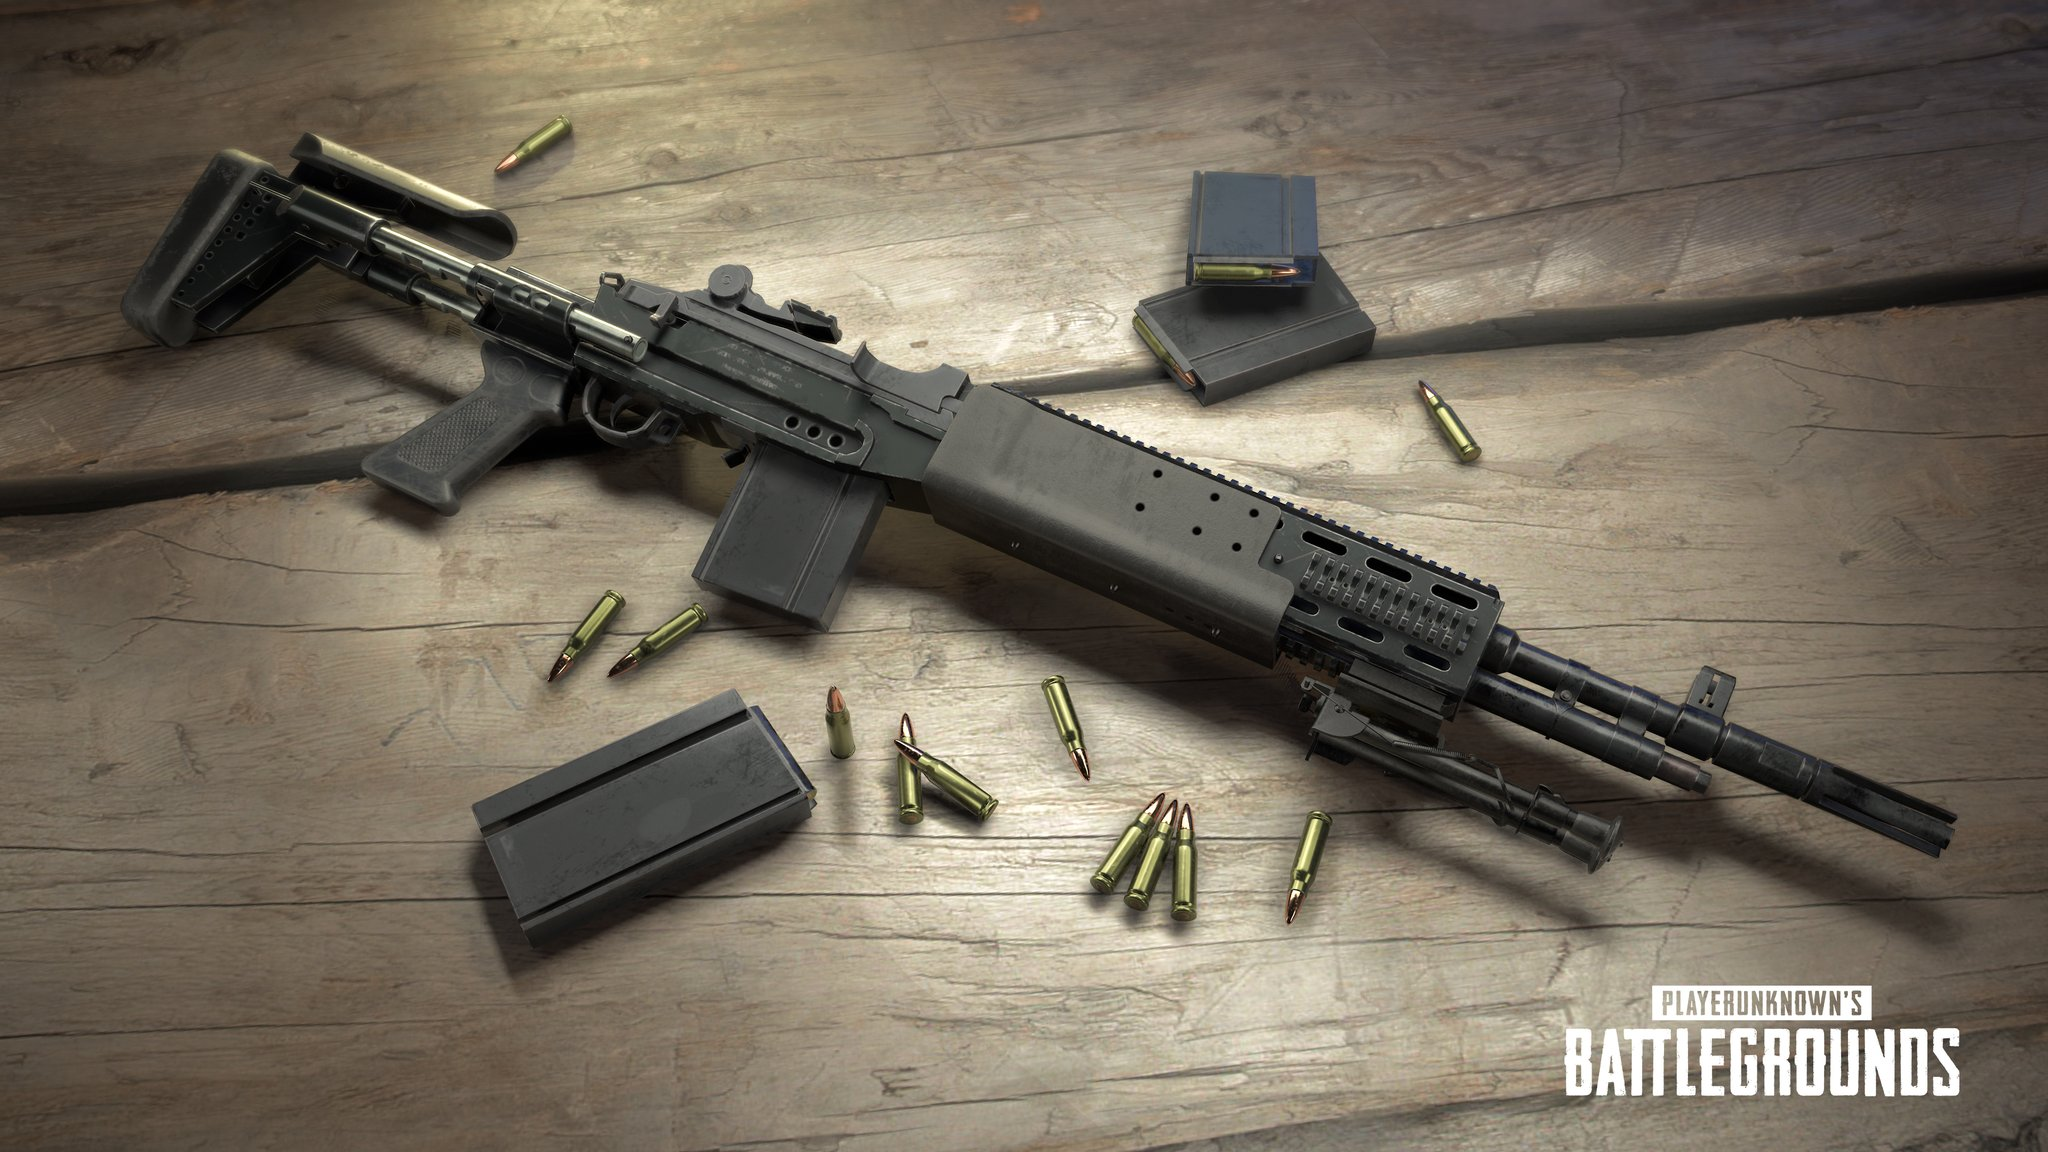 2 New Weapons Coming To Playerunknown S Battlegrounds: Mk14 EBR Rifle Revealed For PlayerUnknown's Battlegrounds